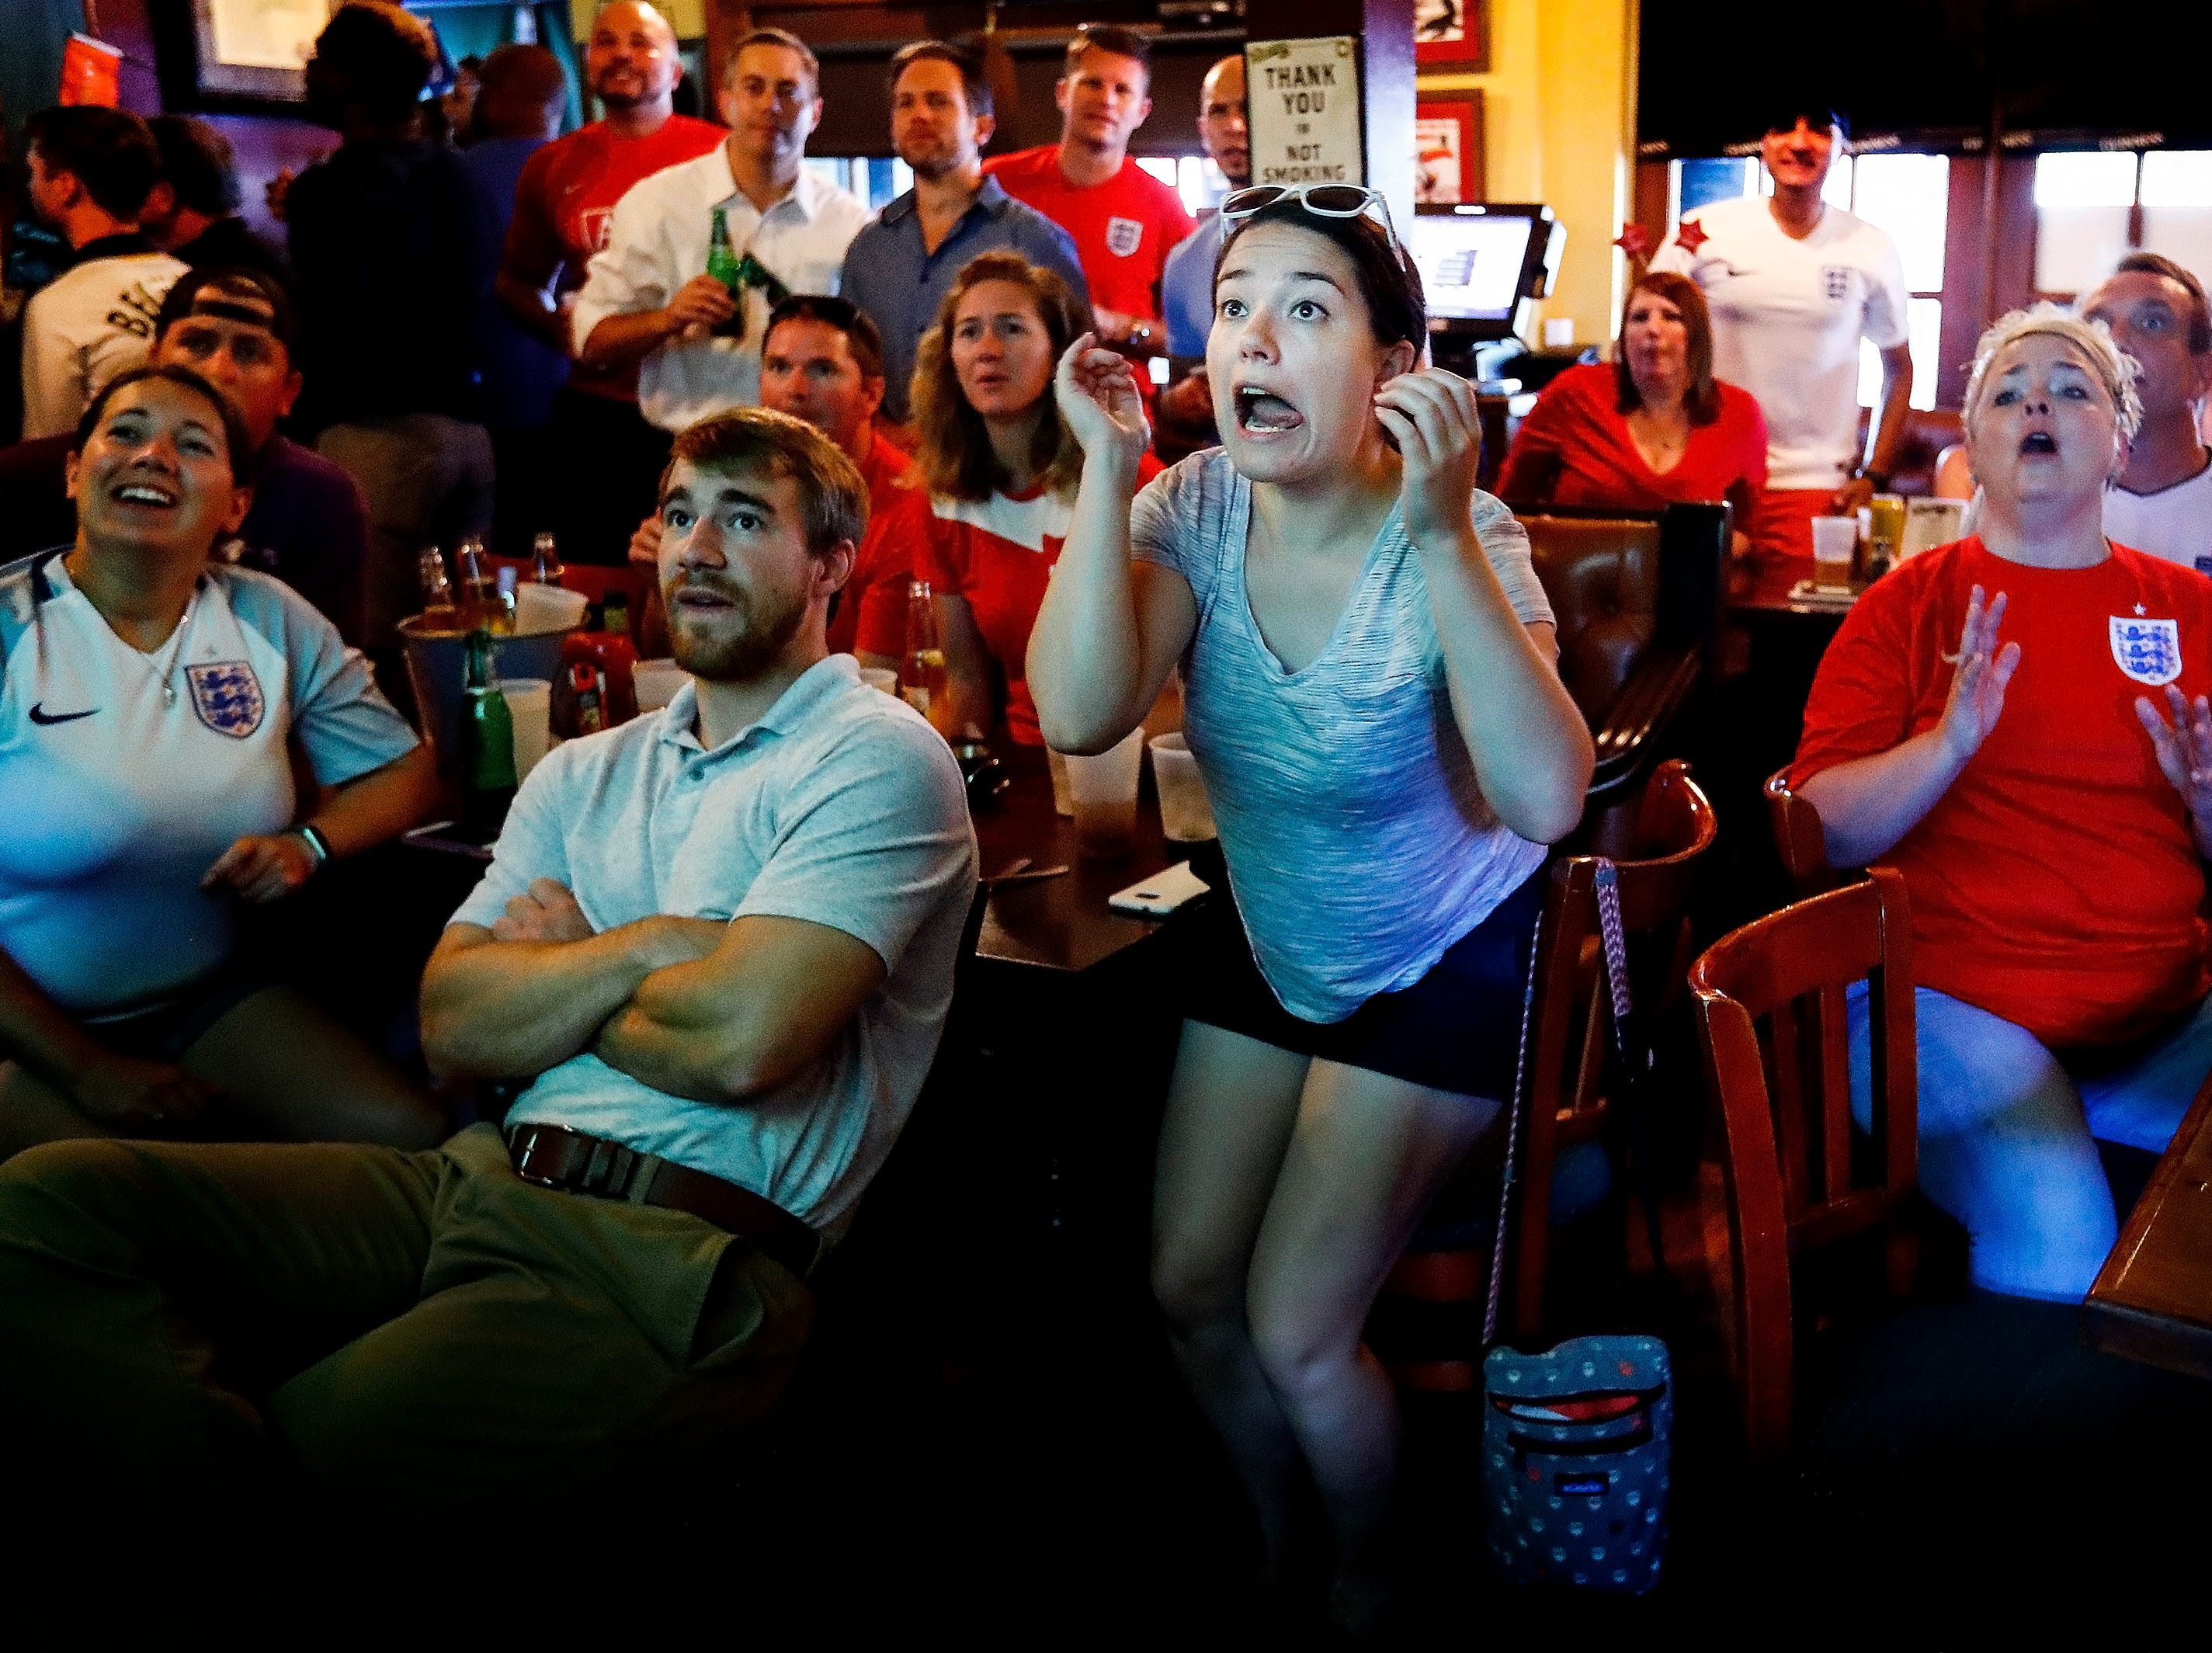 English National Soccer team fan Kate Schuhlein (middle) reacts after a missed goal attempt against Croatia, while fans enjoy the World Cup match at Celtic Crossing.